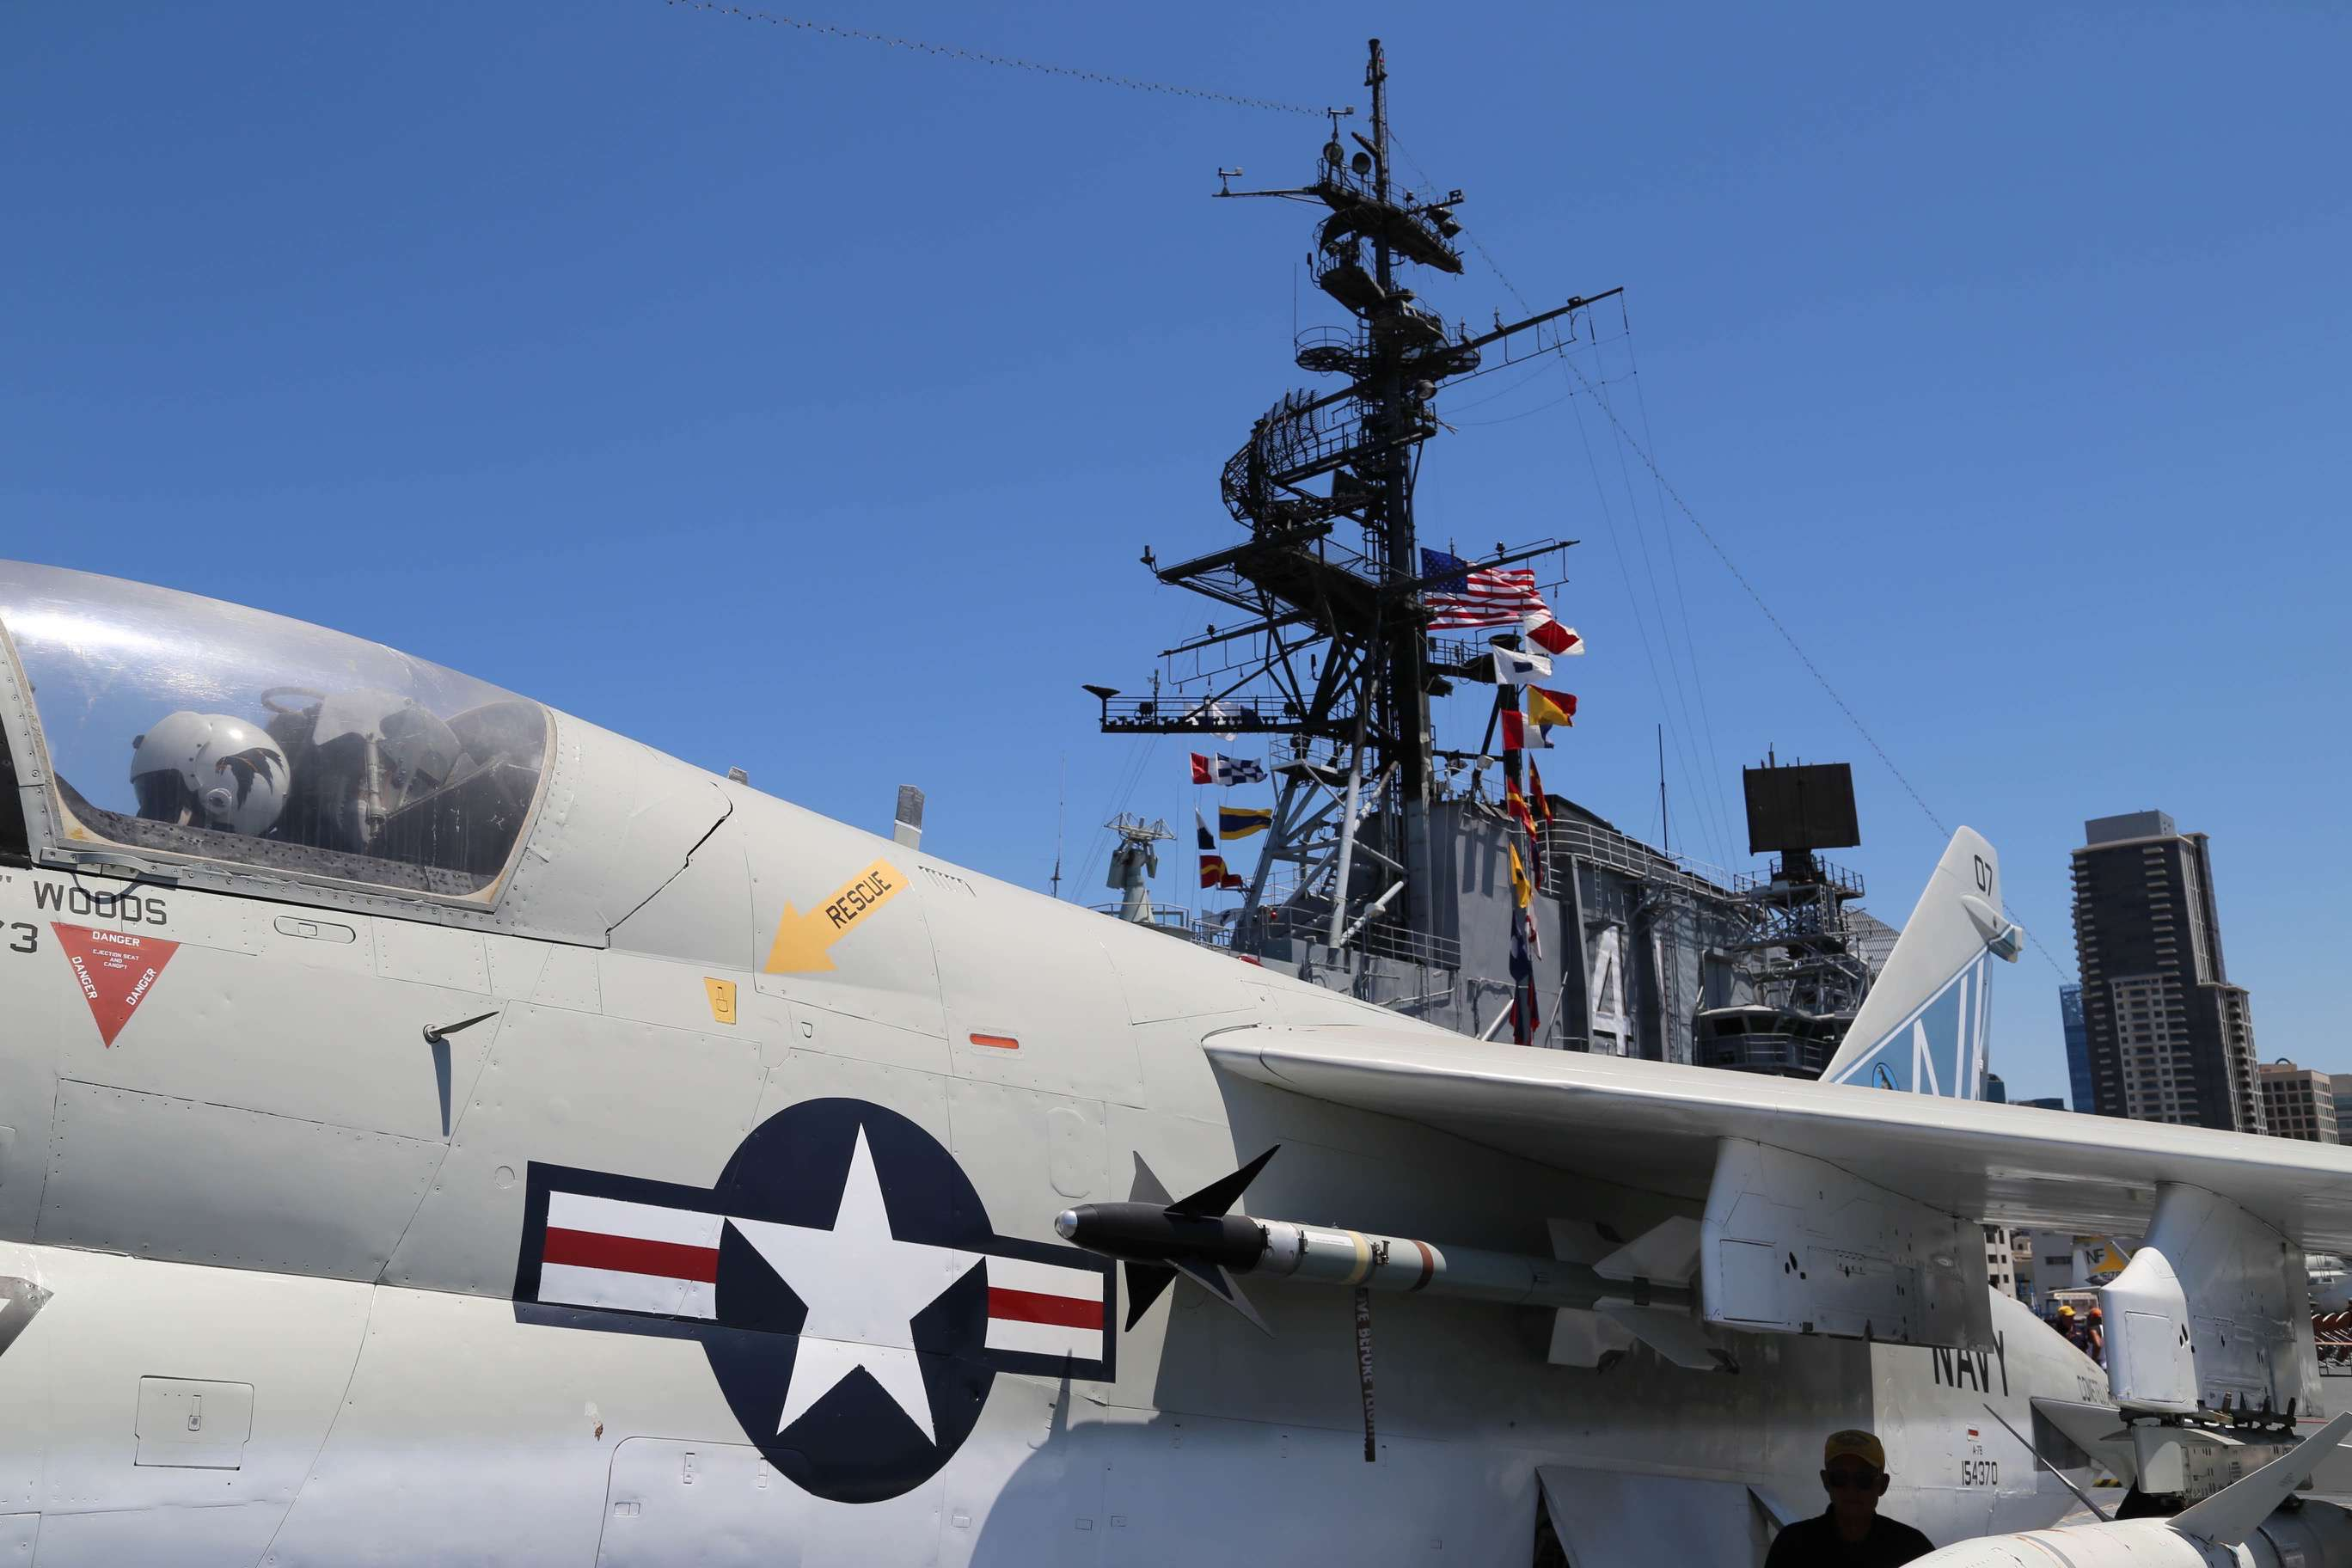 A fighter jet is positioned for takeoff aboard the USS Midway.